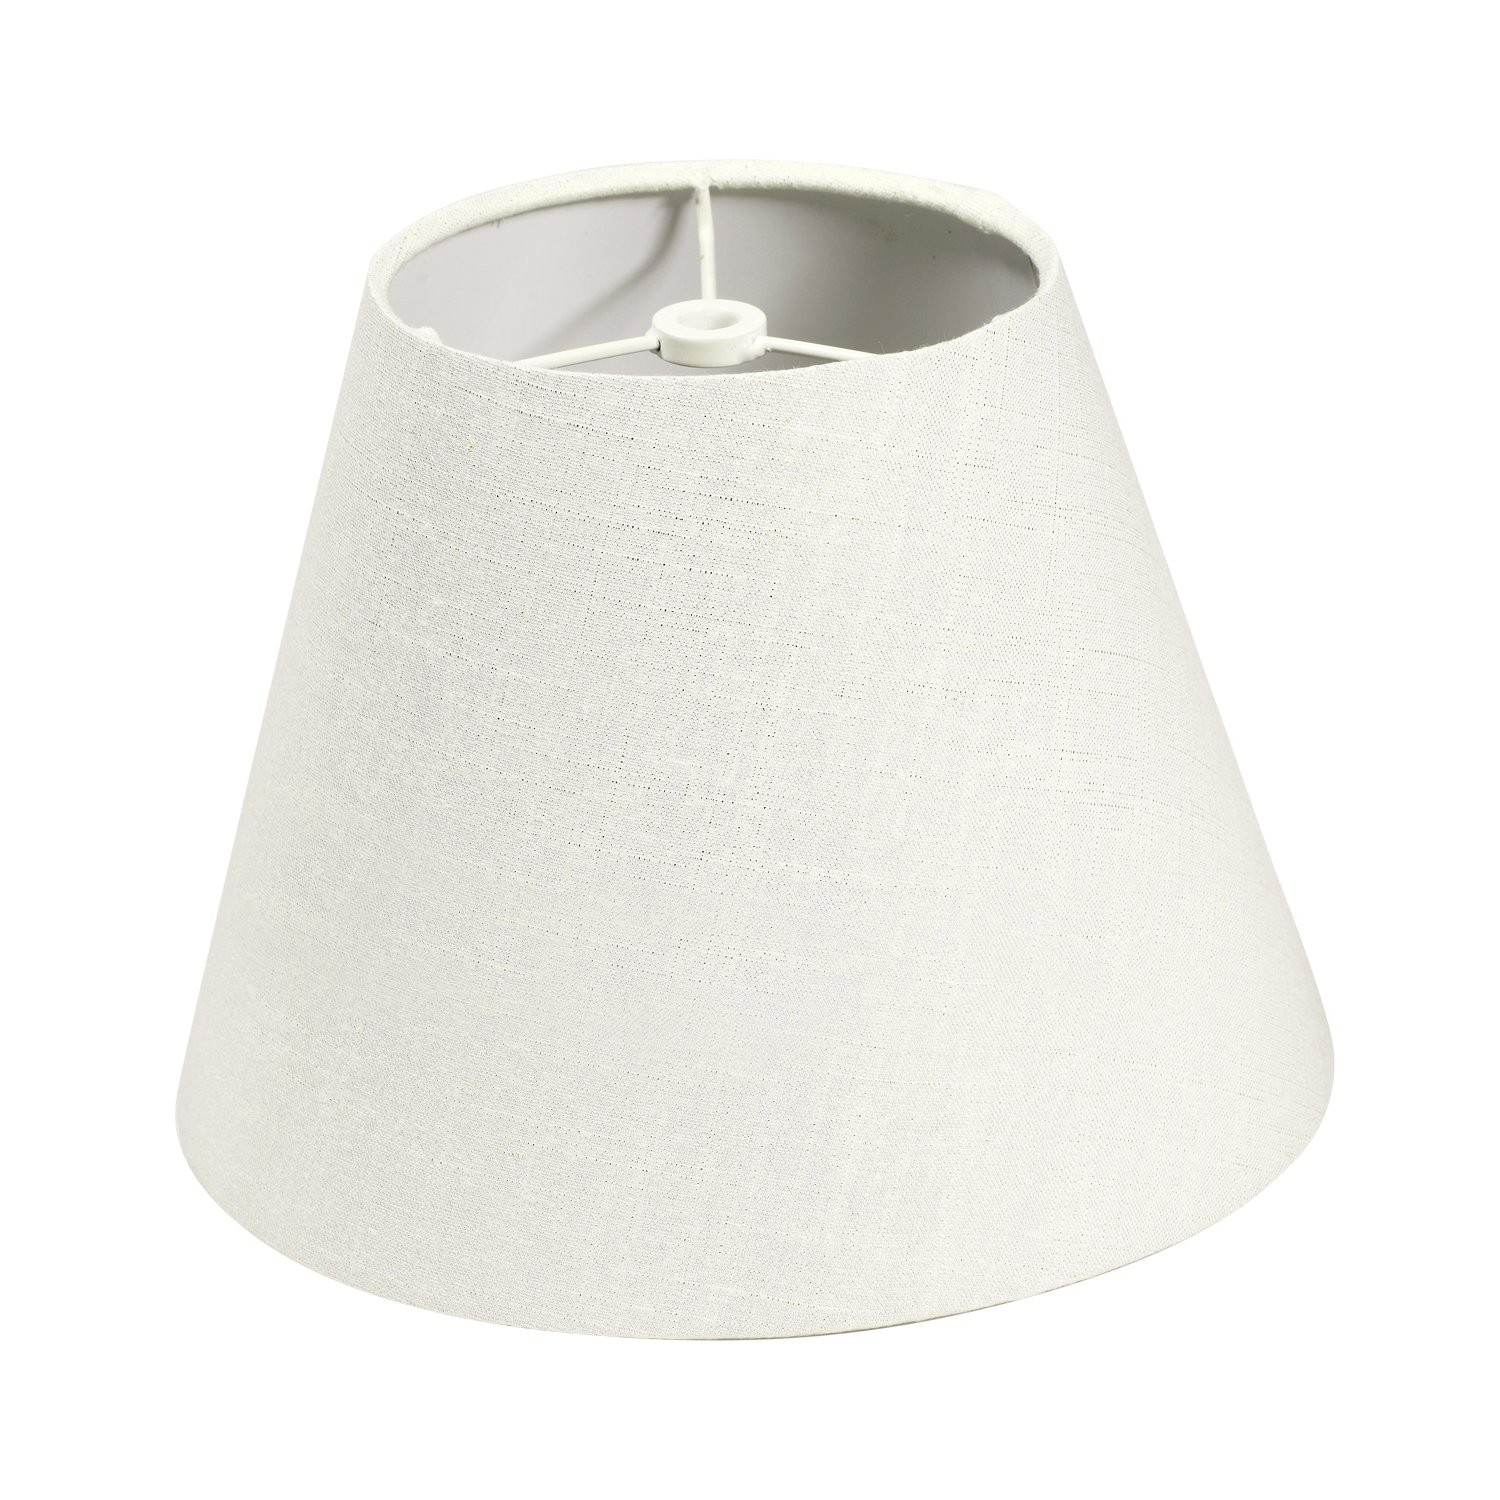 Lamp Shade IMISI Linen Fabric Lamp Shade Small 5'' Top Diameter x 9'' Bottom Diameter x 7'' Tall